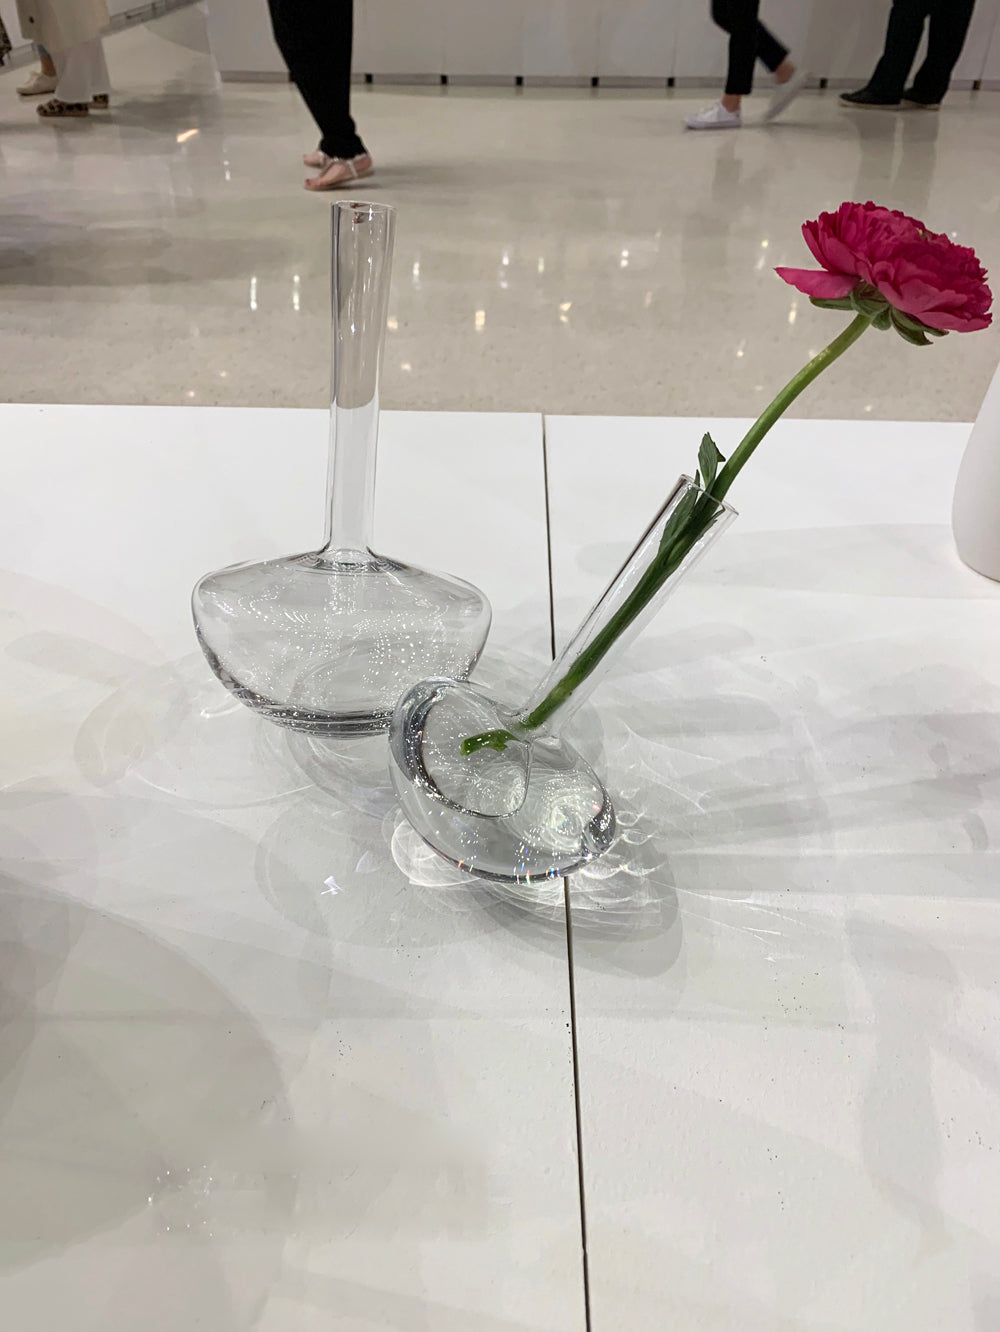 The Gauge vase in Dubai